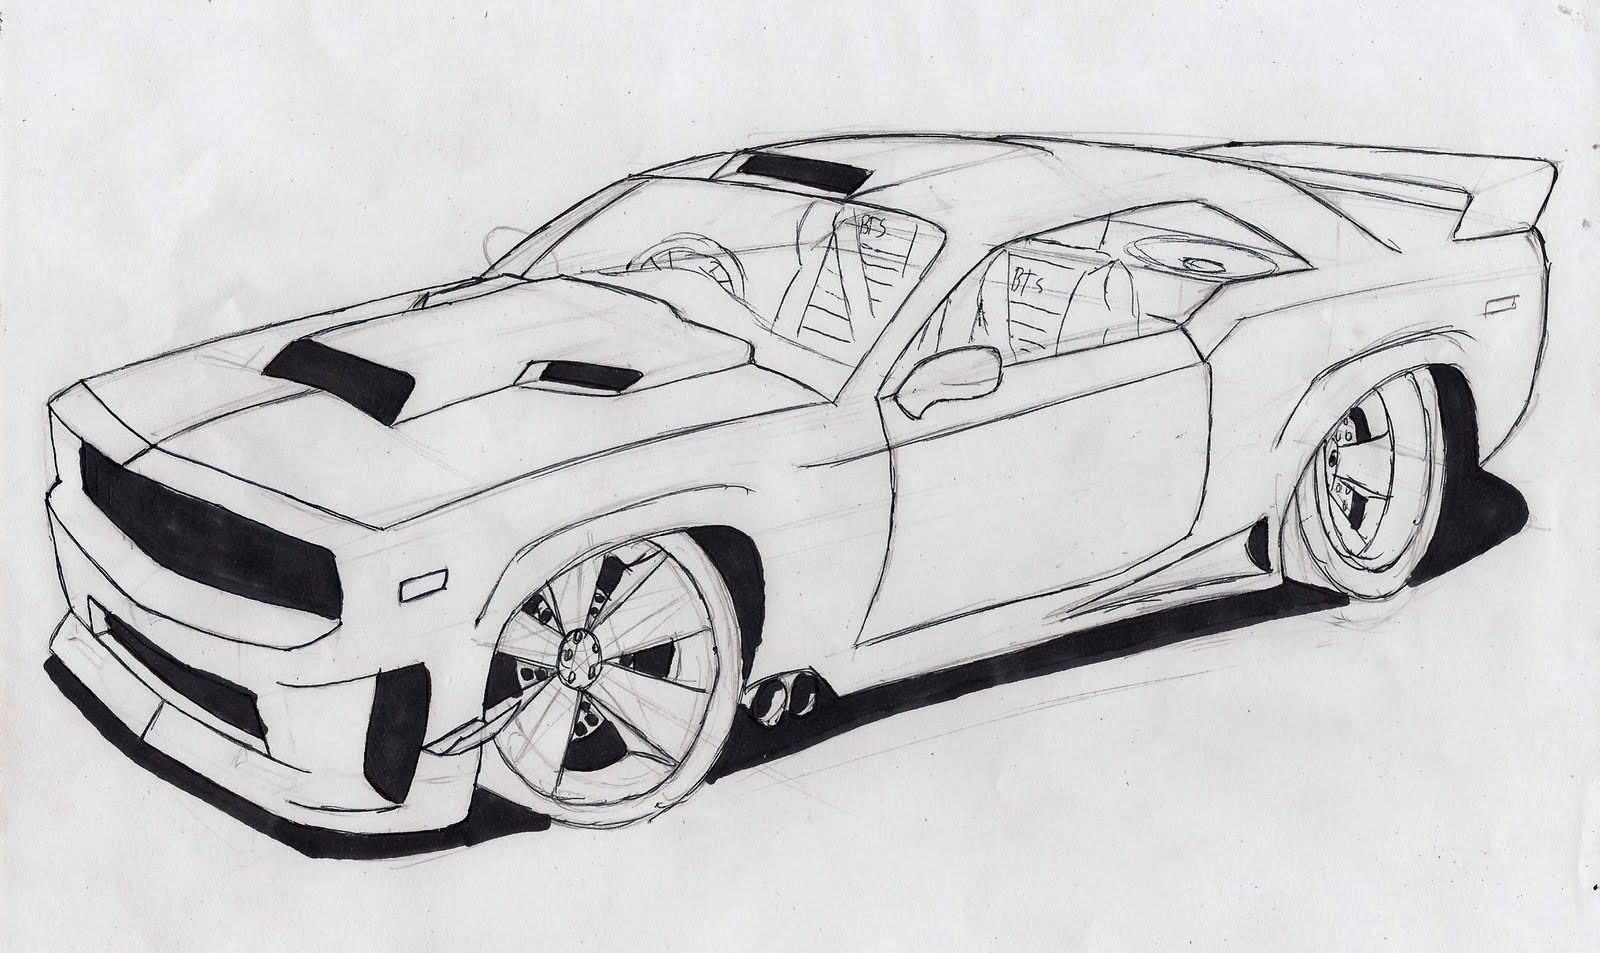 Drawn race car outline Free  Clip Car Car